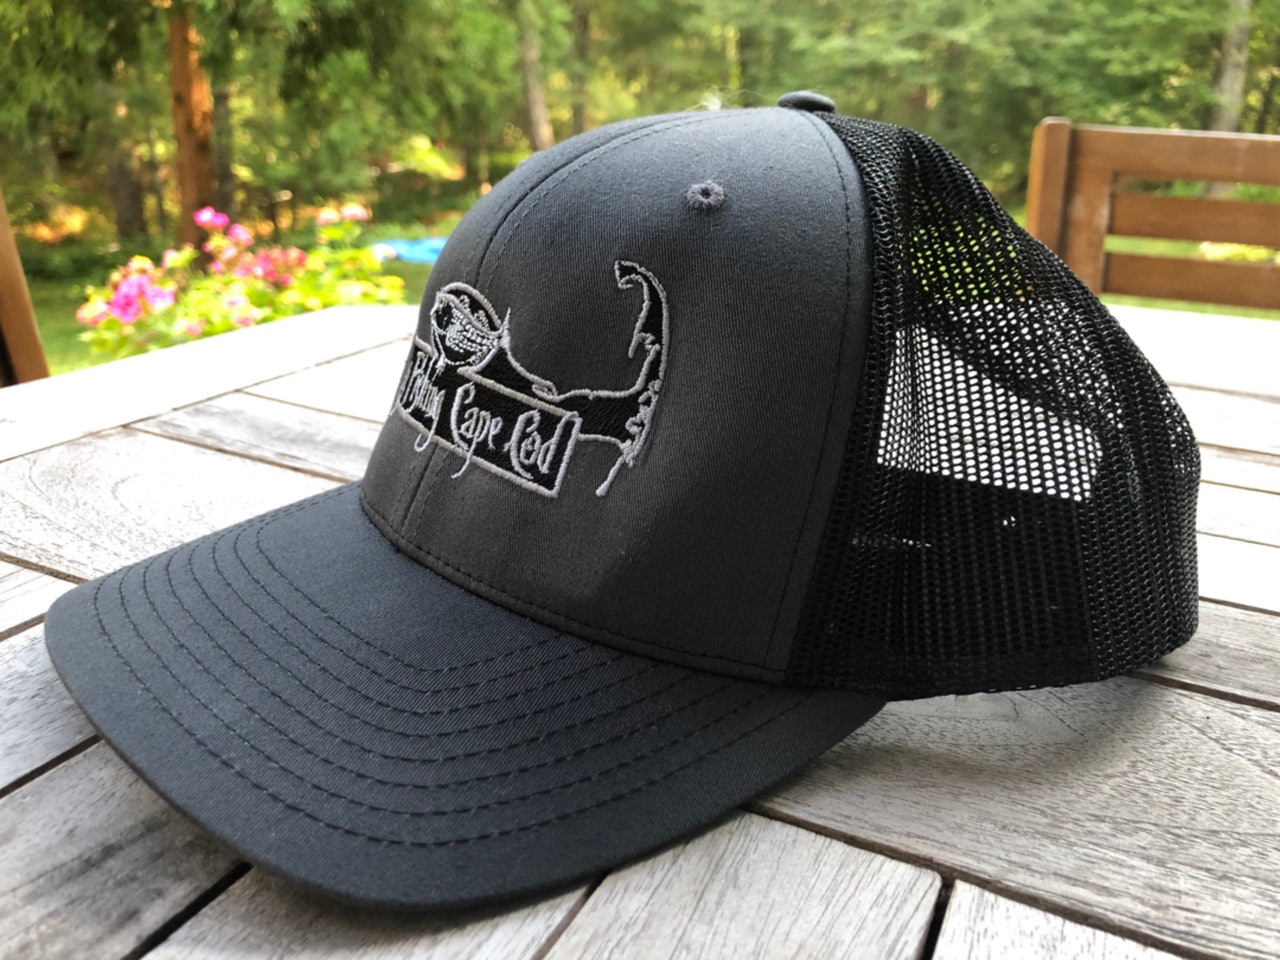 MFCC Hats